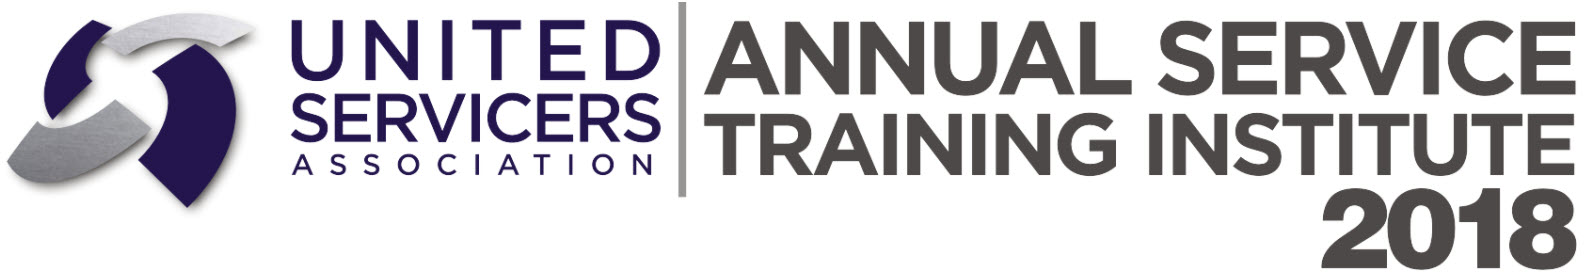 United Servicers Association: Annual Servicer Training Institute